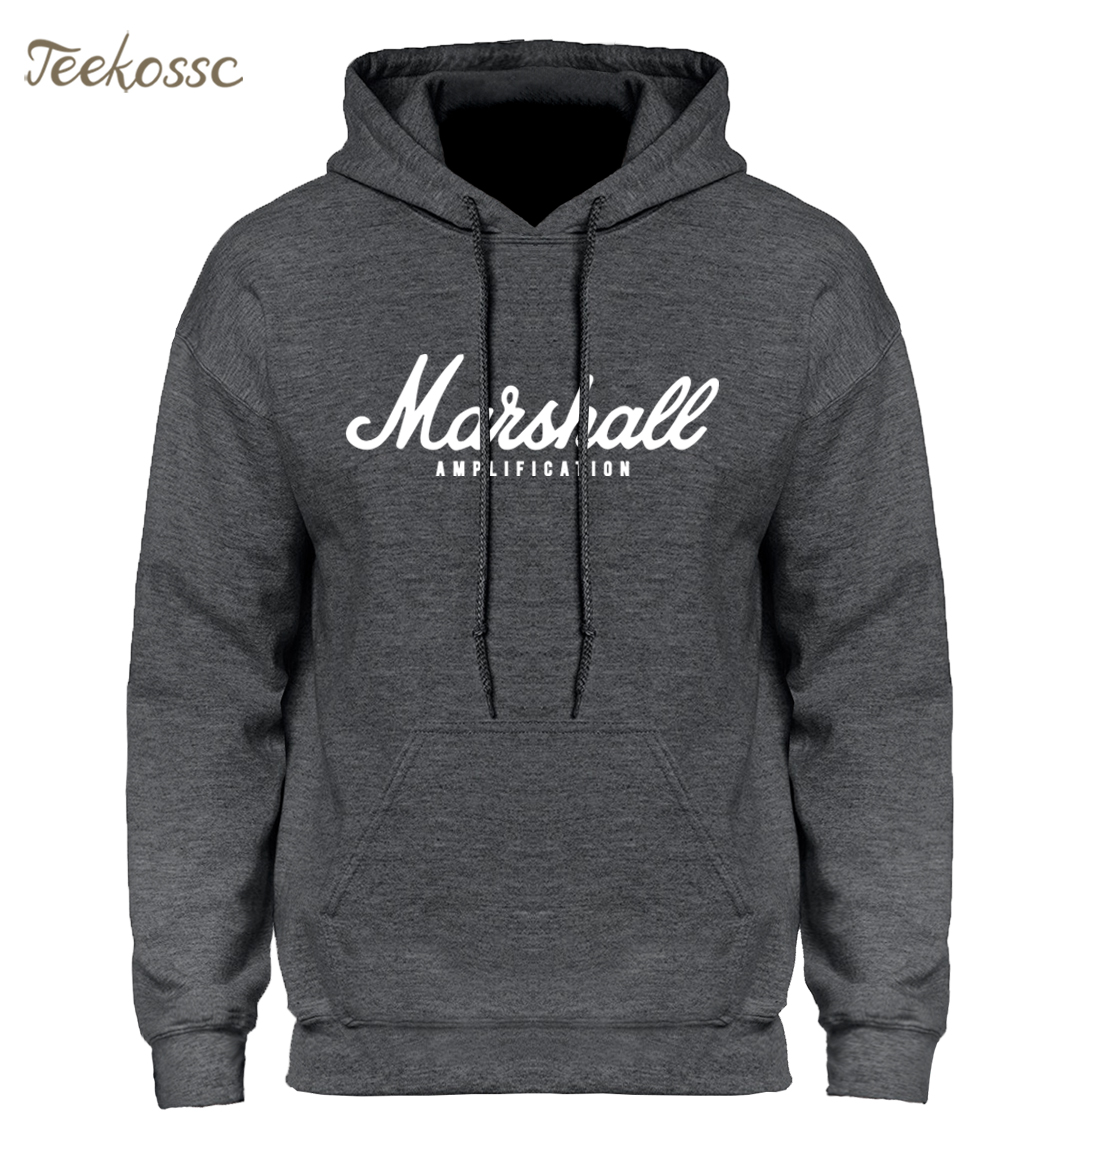 Marshall Hoodie Men Amplification Hoodies Mens Slim Hooded Sweatshirt Winter Autumn Hip Hop Brand Streetwear Crossfit Hoody